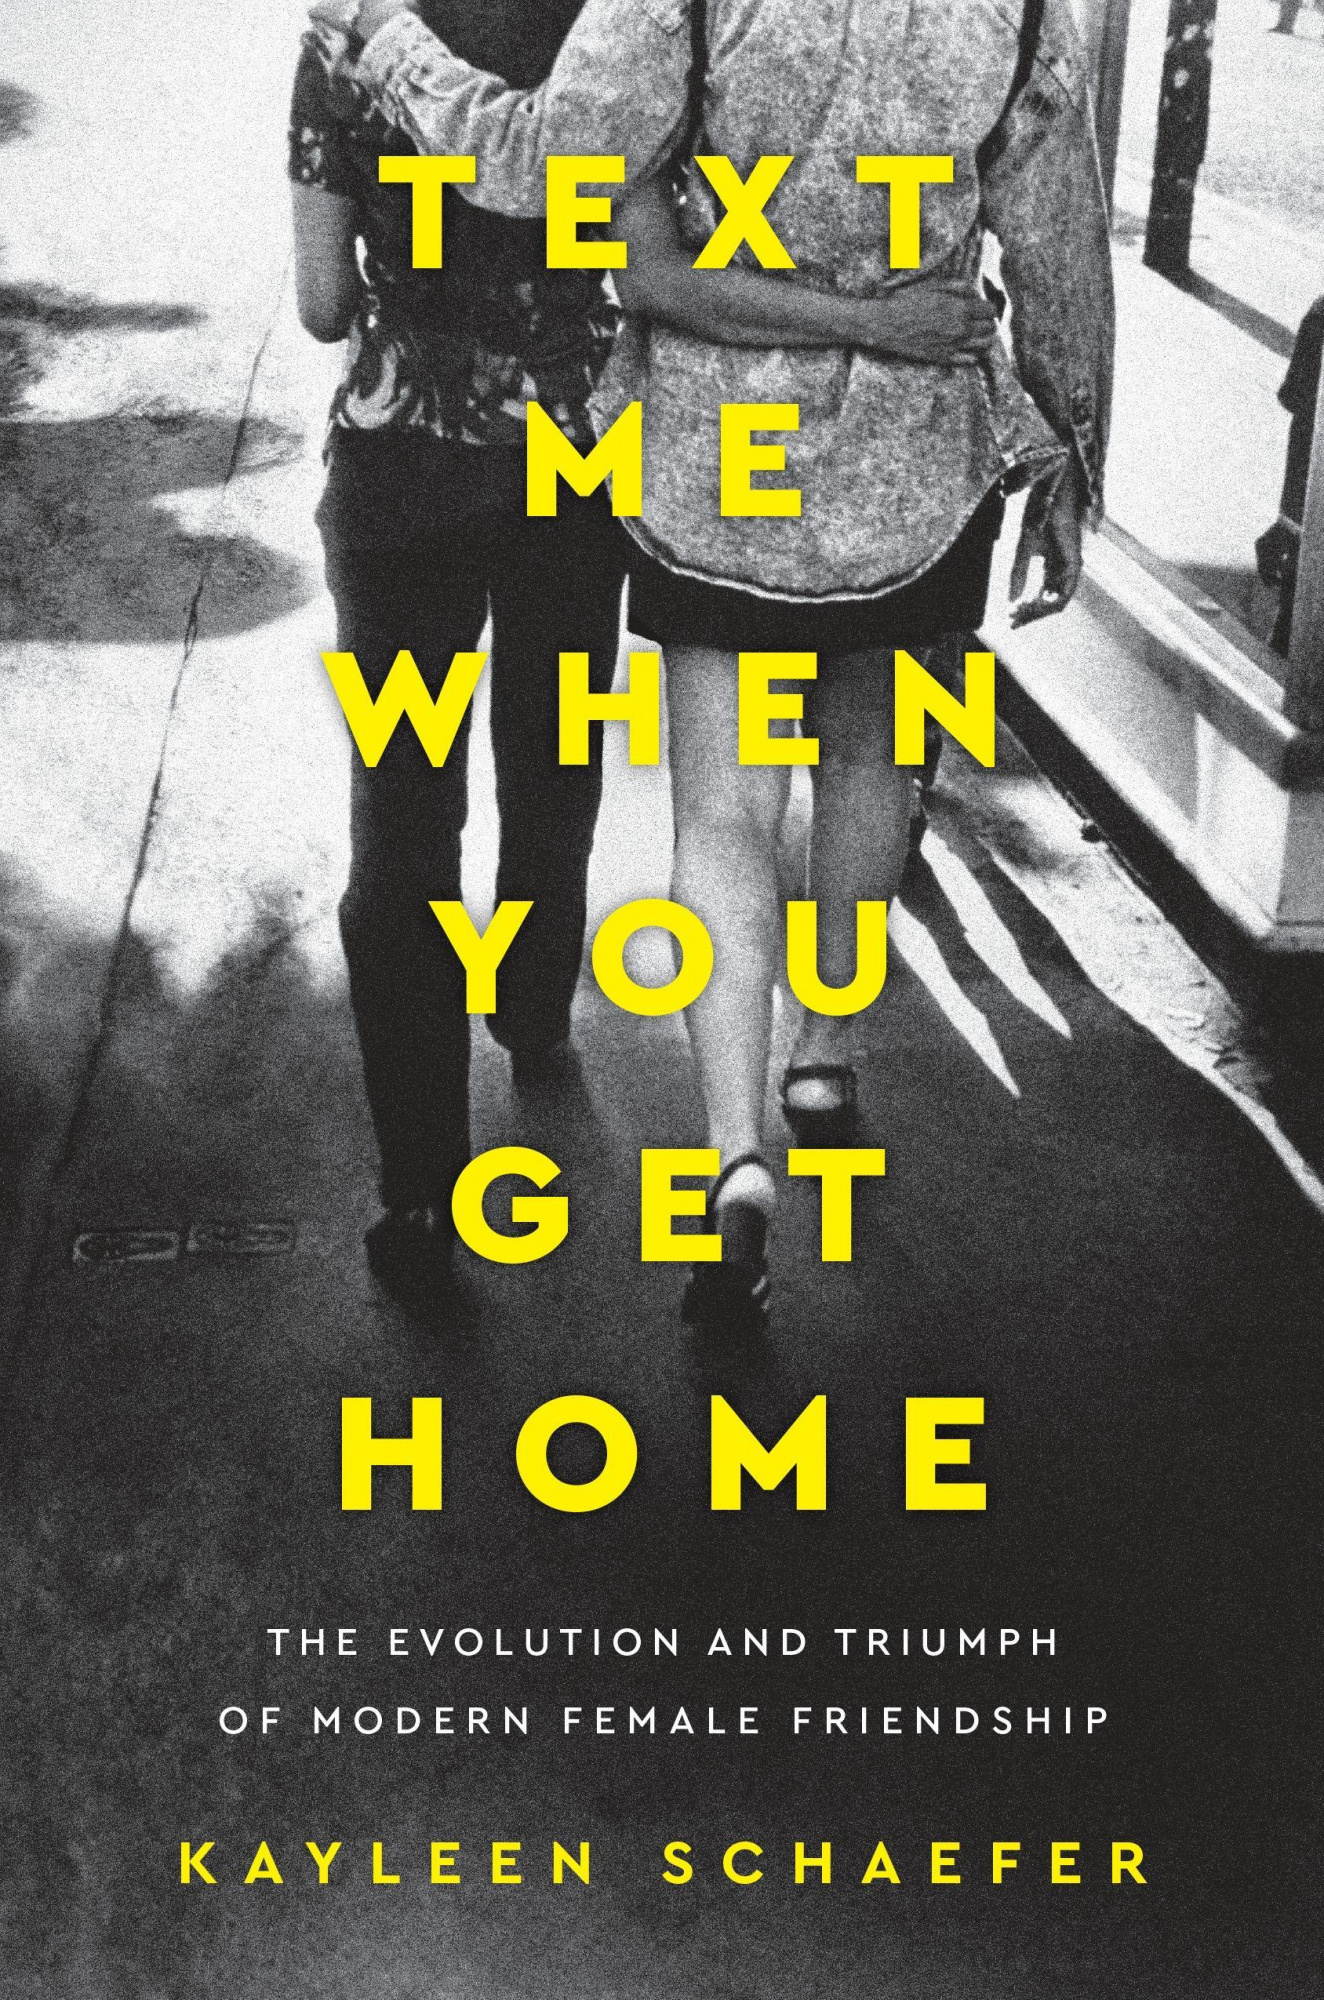 Text Me When You Get Home by Kayleen Schaefer, ISBN: 9781101986127